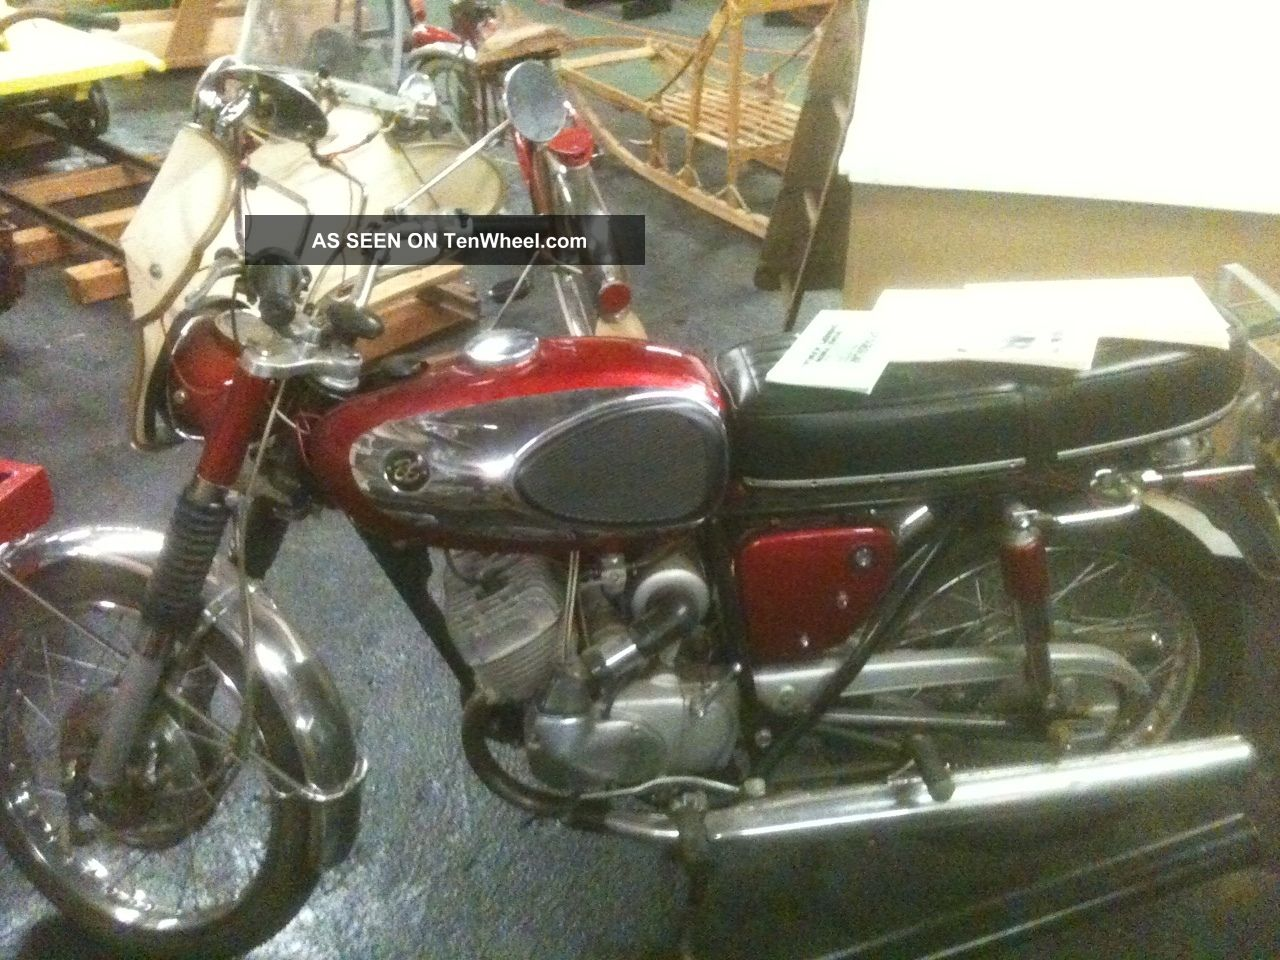 1966 Bridgestone 175 Dual Twin Motorcycle,  In Very,  Inside Stored Other Makes photo